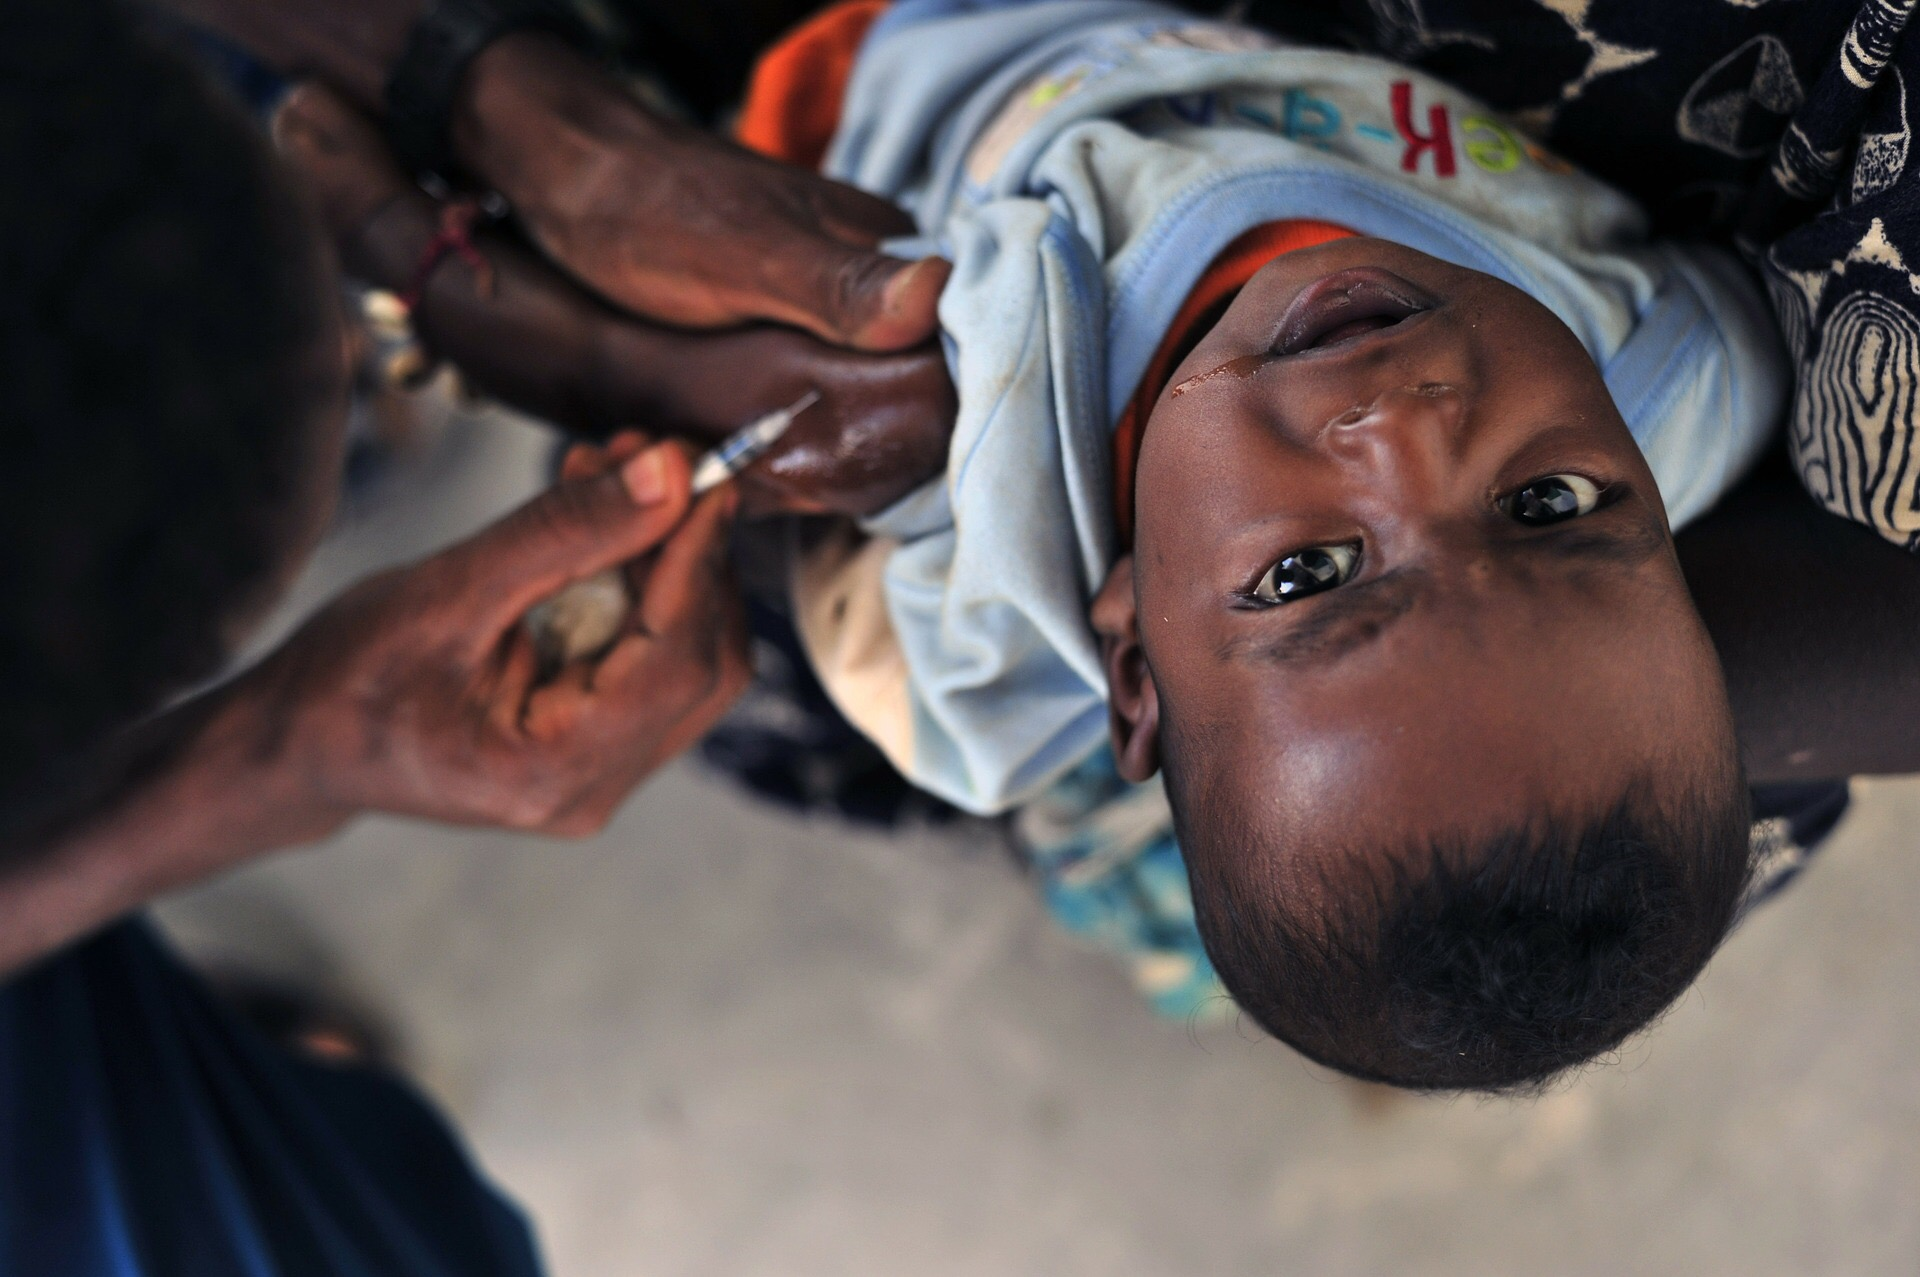 Global Vaccination Coverage skyrocketed from 20% to 86% since 1980